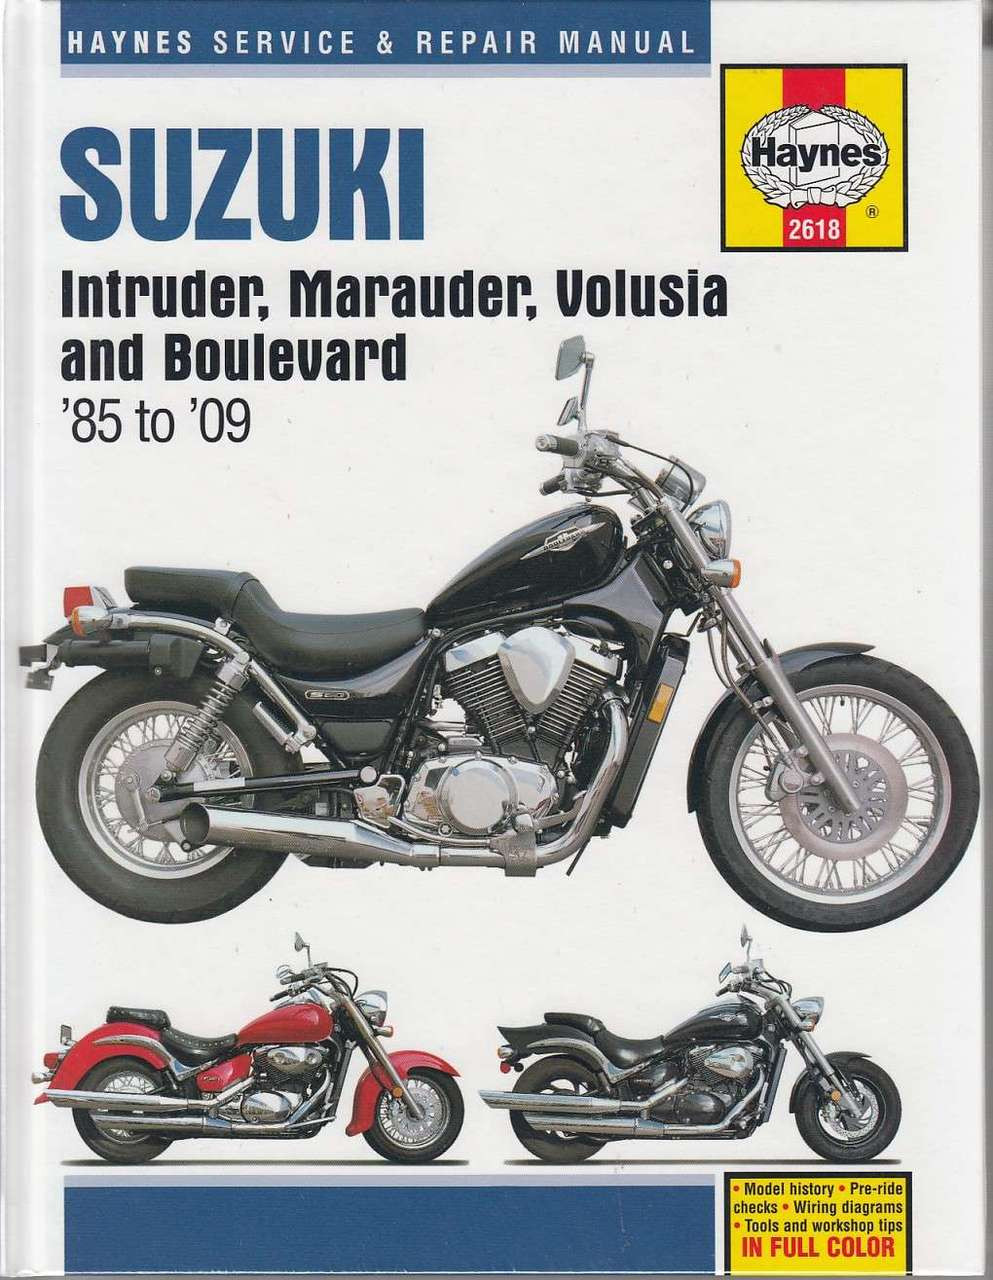 suzuki intruder marauder volusia and boulevard 1985 2009 rh automotobookshop com au suzuki marauder 800 service manual pdf suzuki marauder service manual download